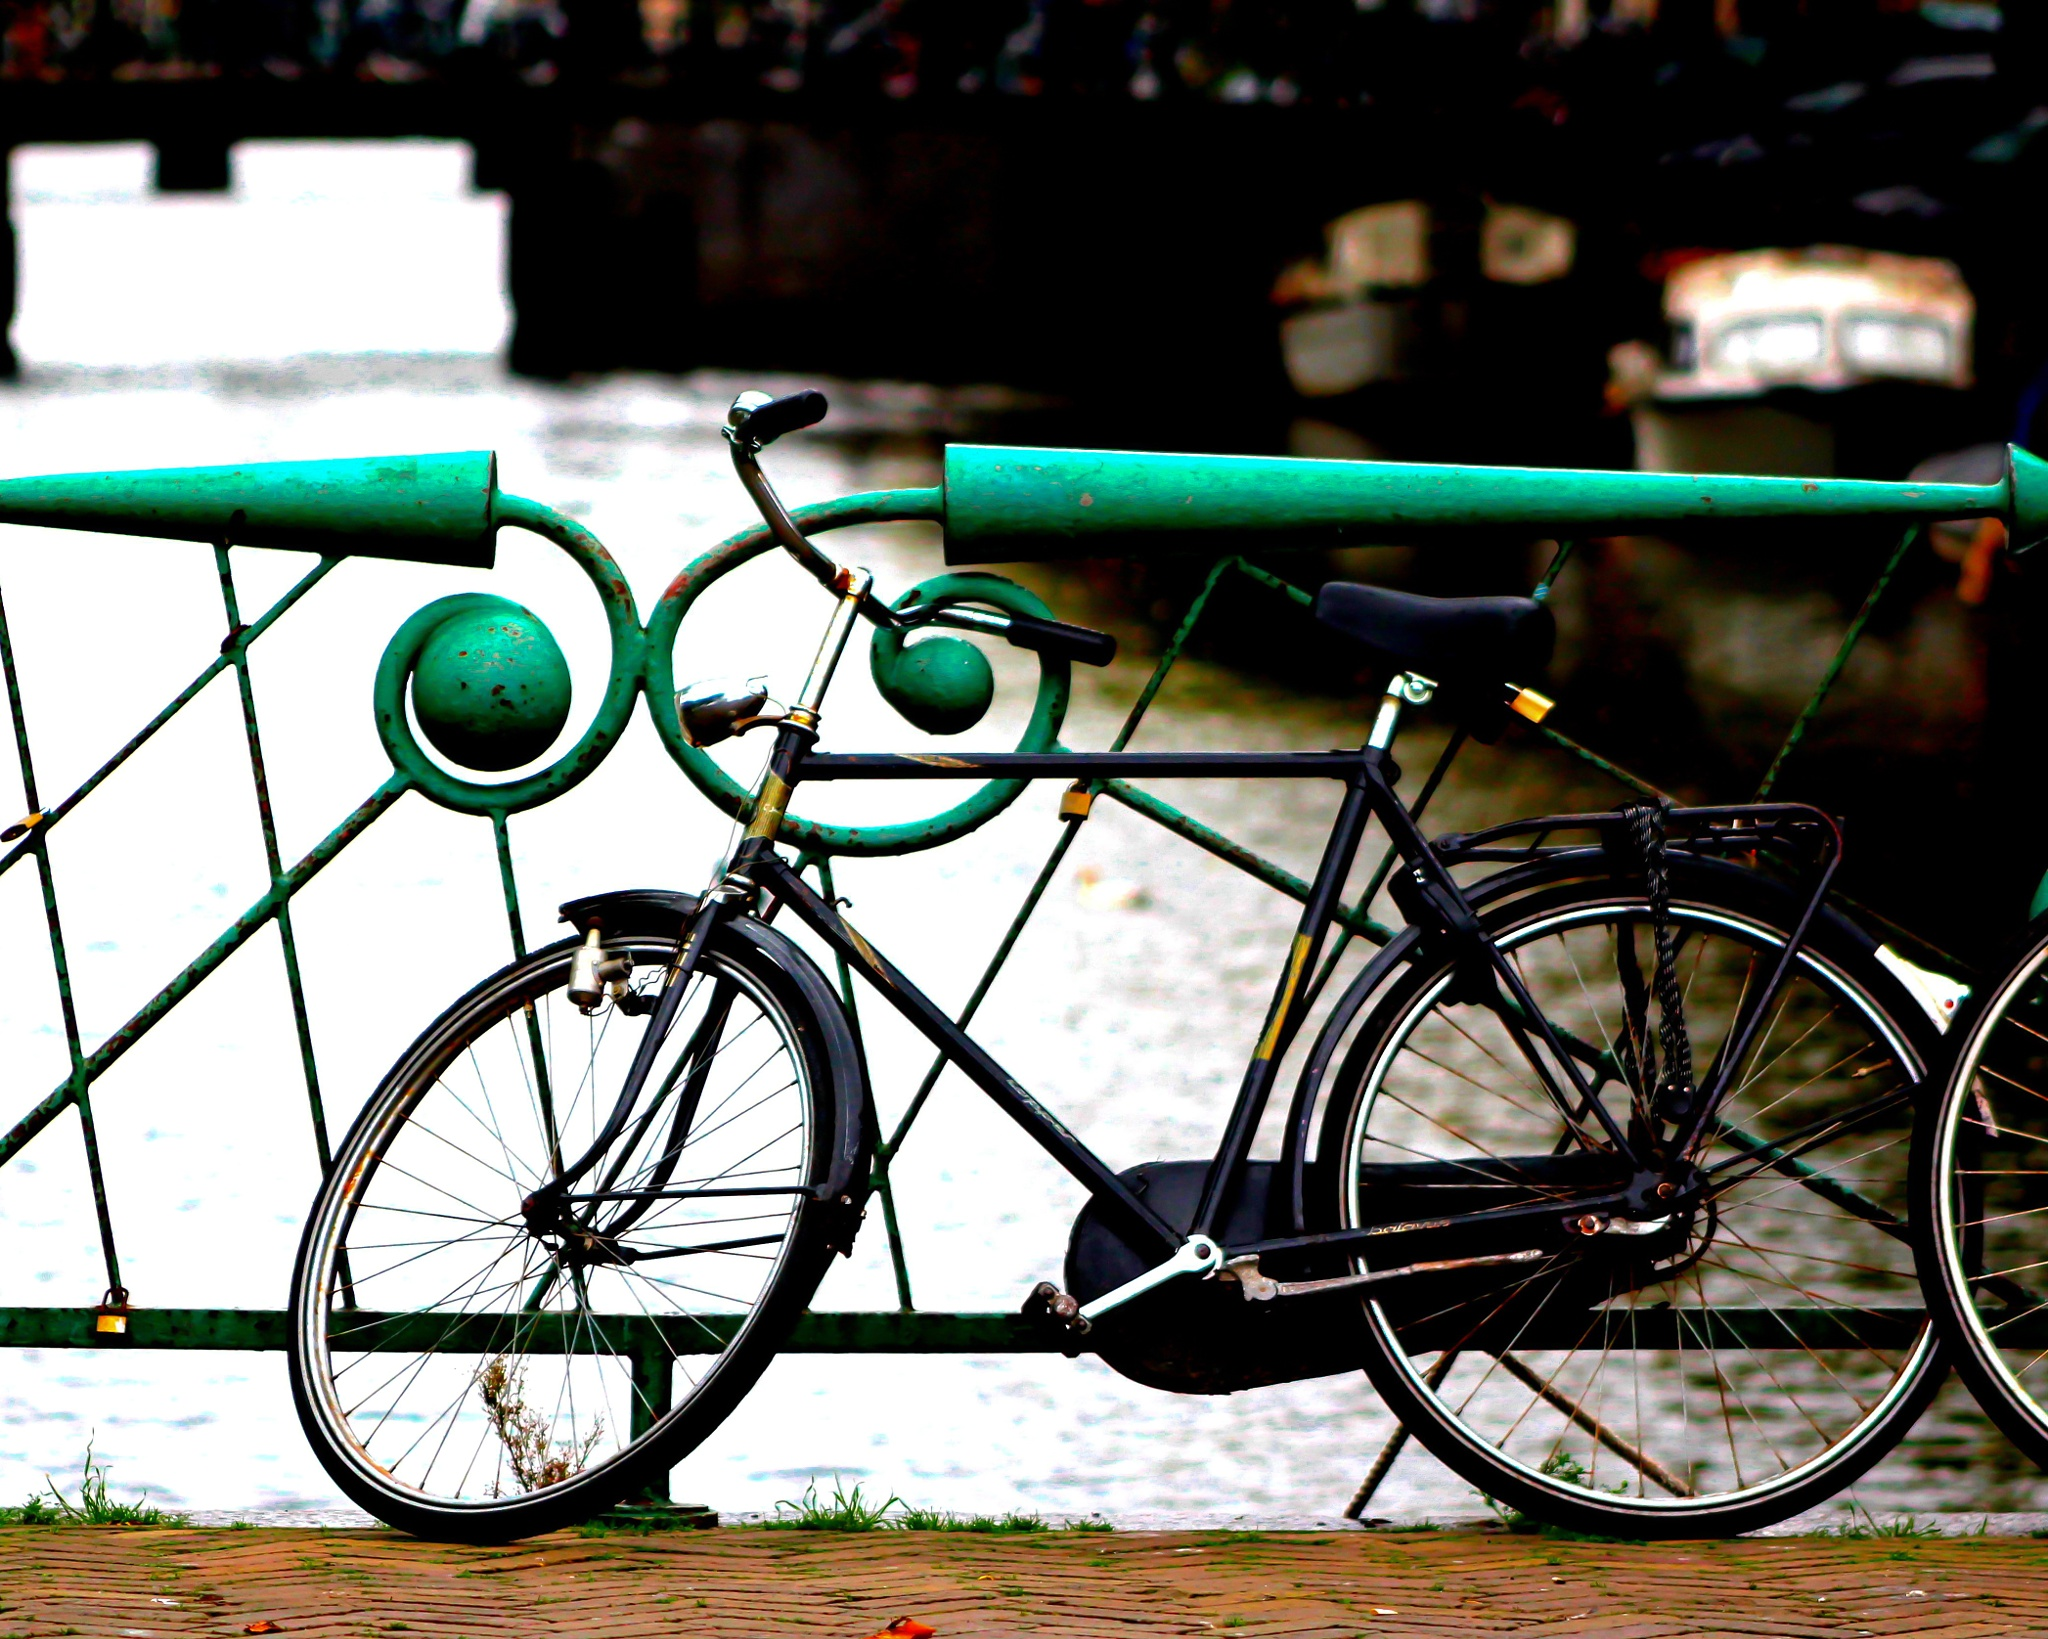 Amsterdam Blue Bicycle Green Bridge by MF - SyracuseLUX